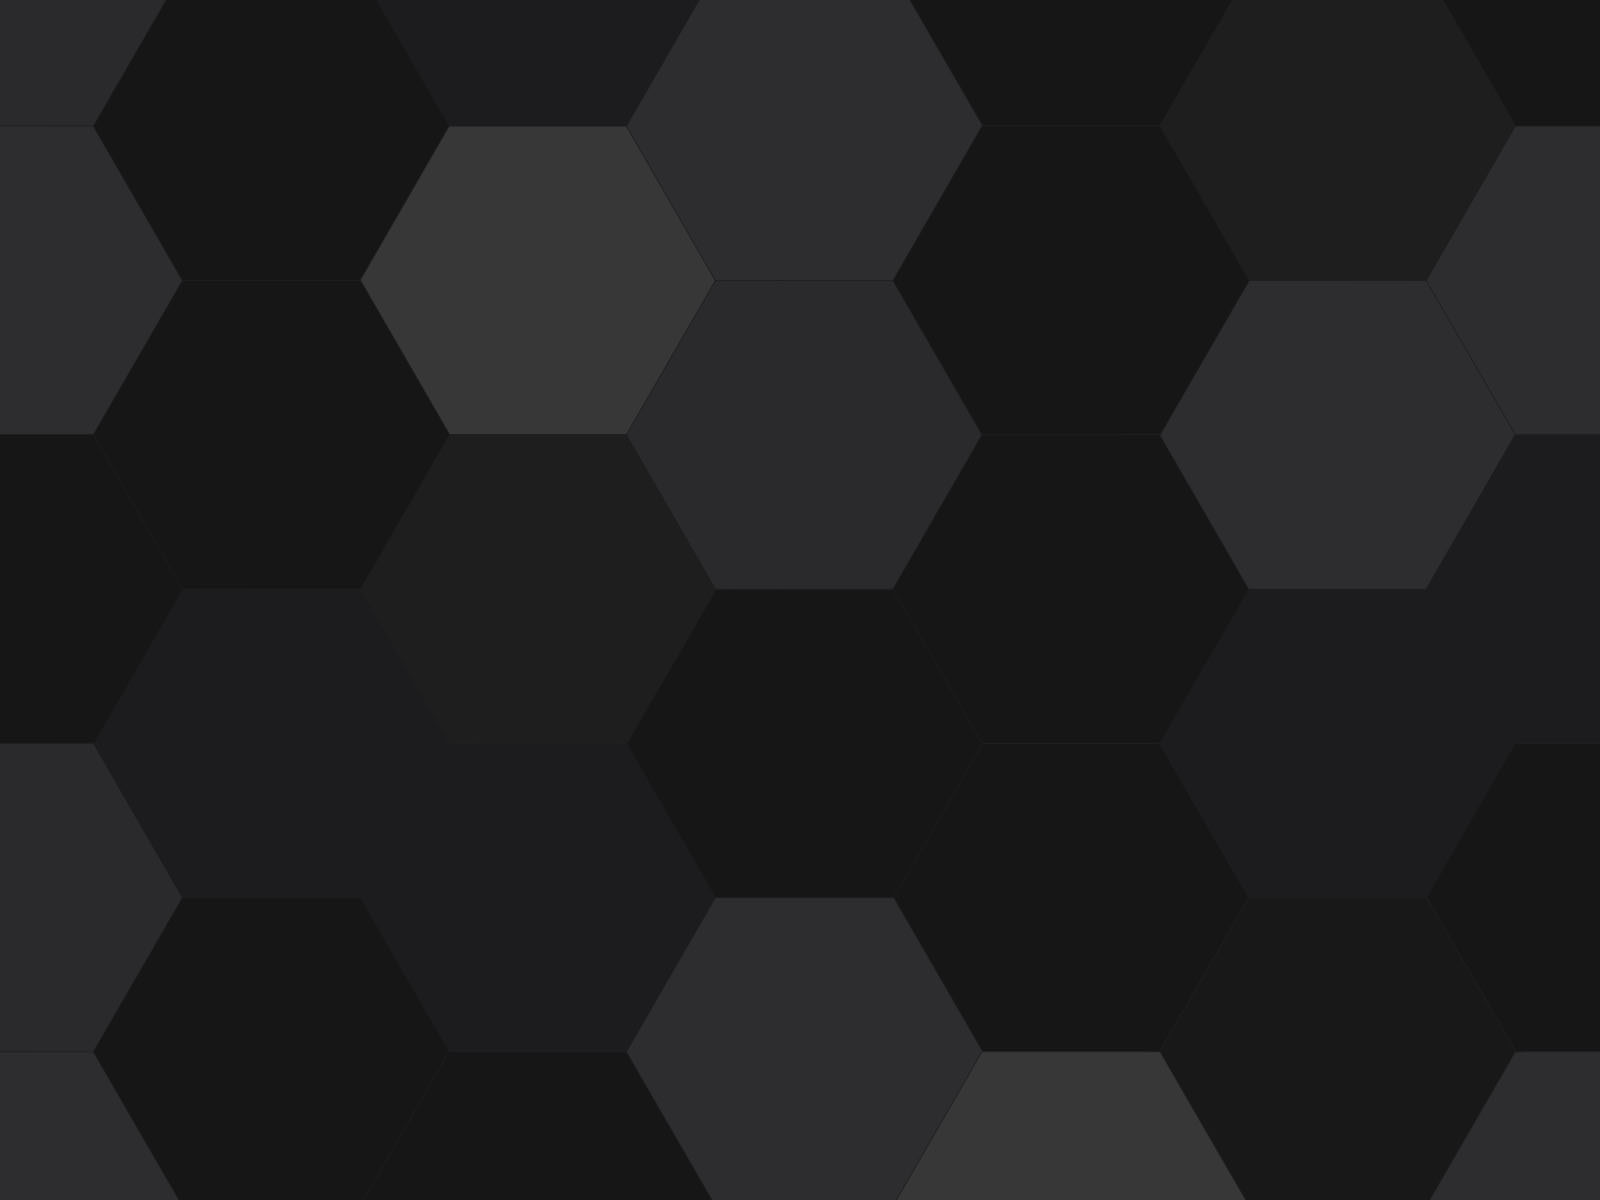 dark hexagon backgrounds 3d  black  grey  white templates free ppt backgrounds and christmas clip art borders lights christmas clip art borders lights